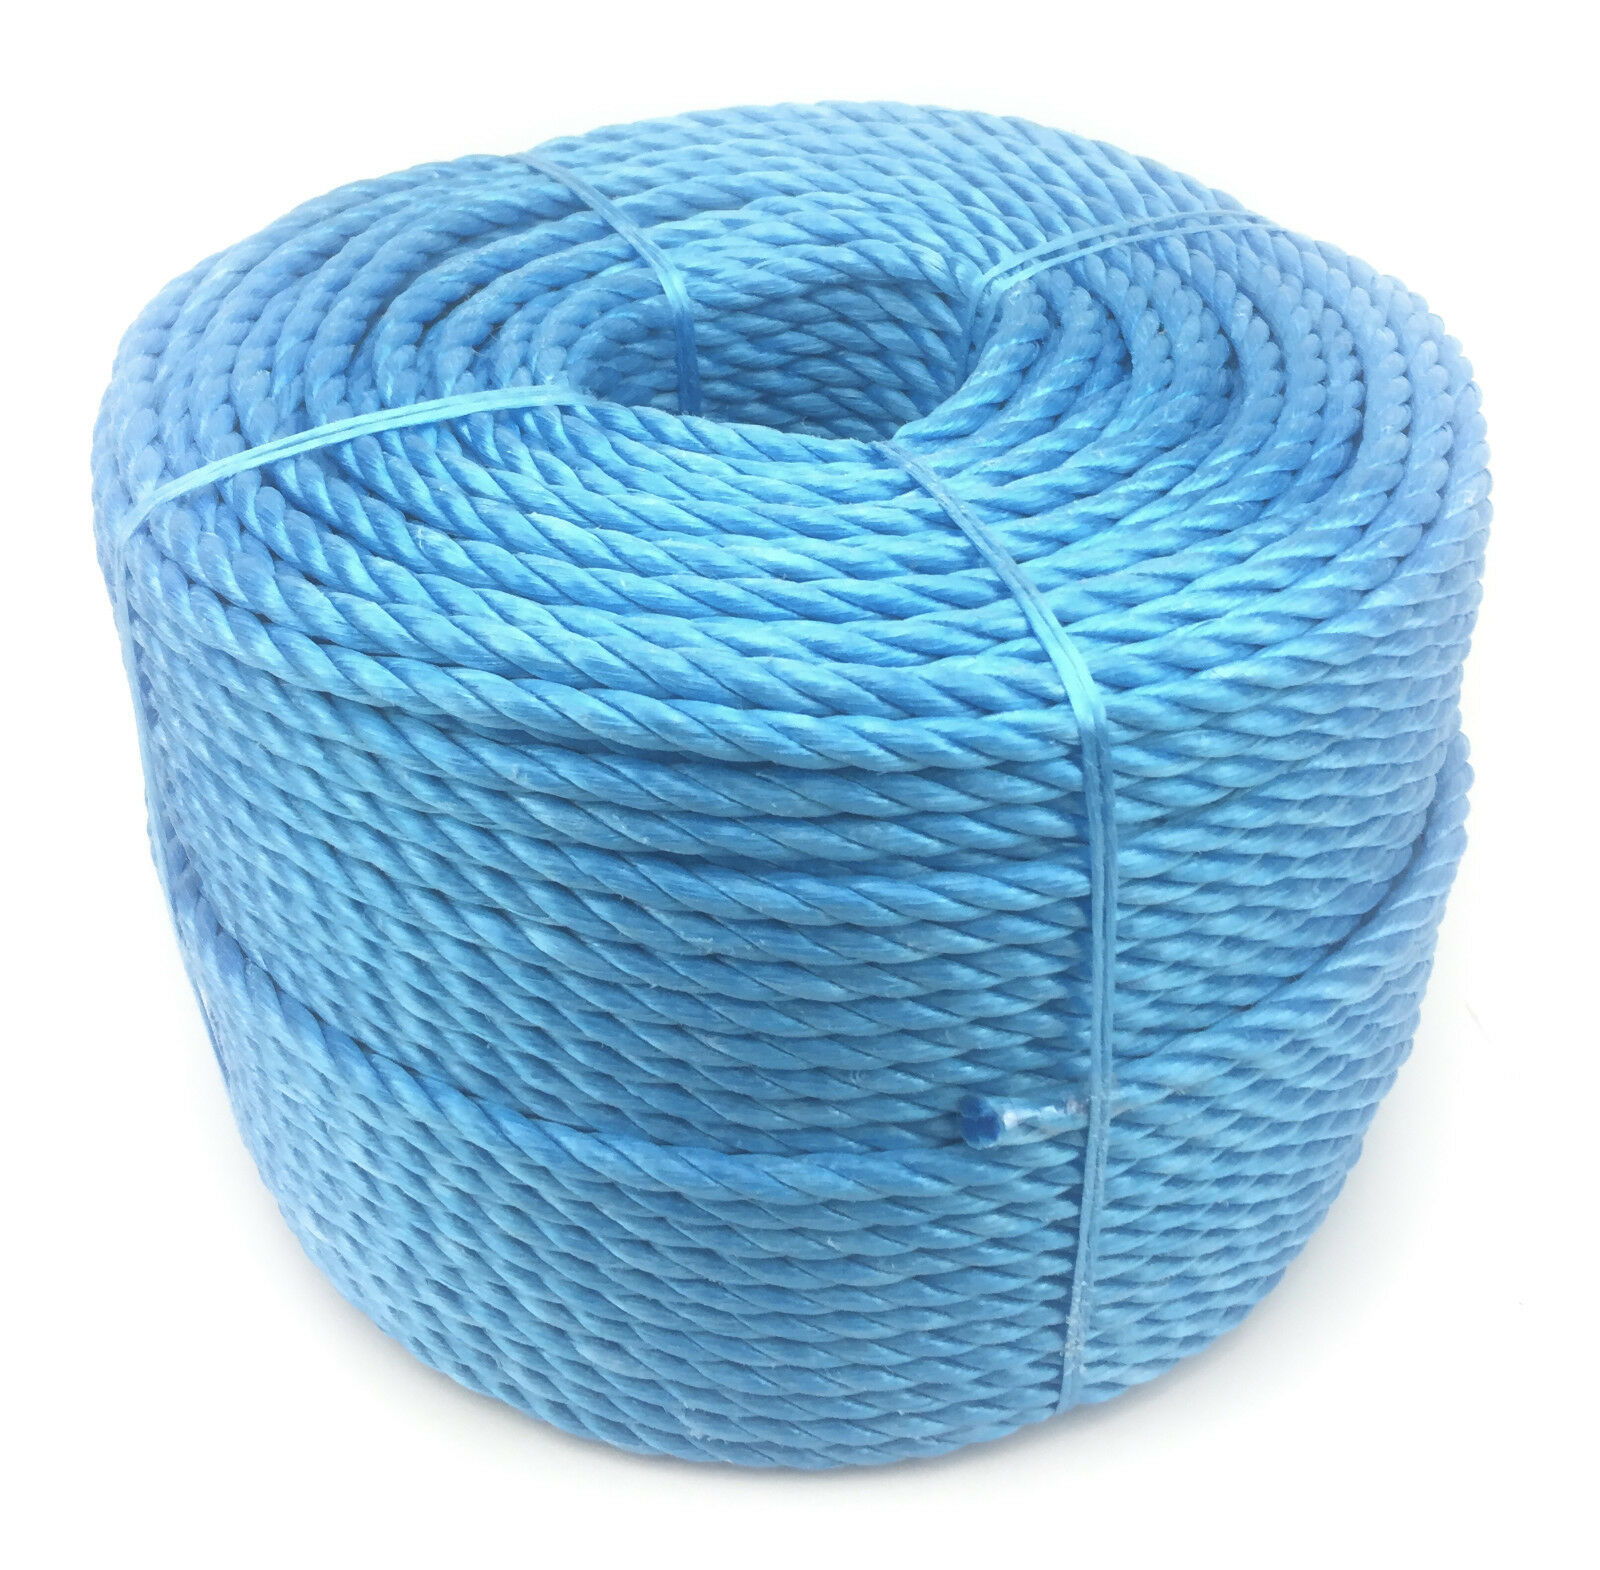 18mm bluee Polypropylene Rope x 50 Metres, Poly Rope Coils, Cheap Nylon Rope